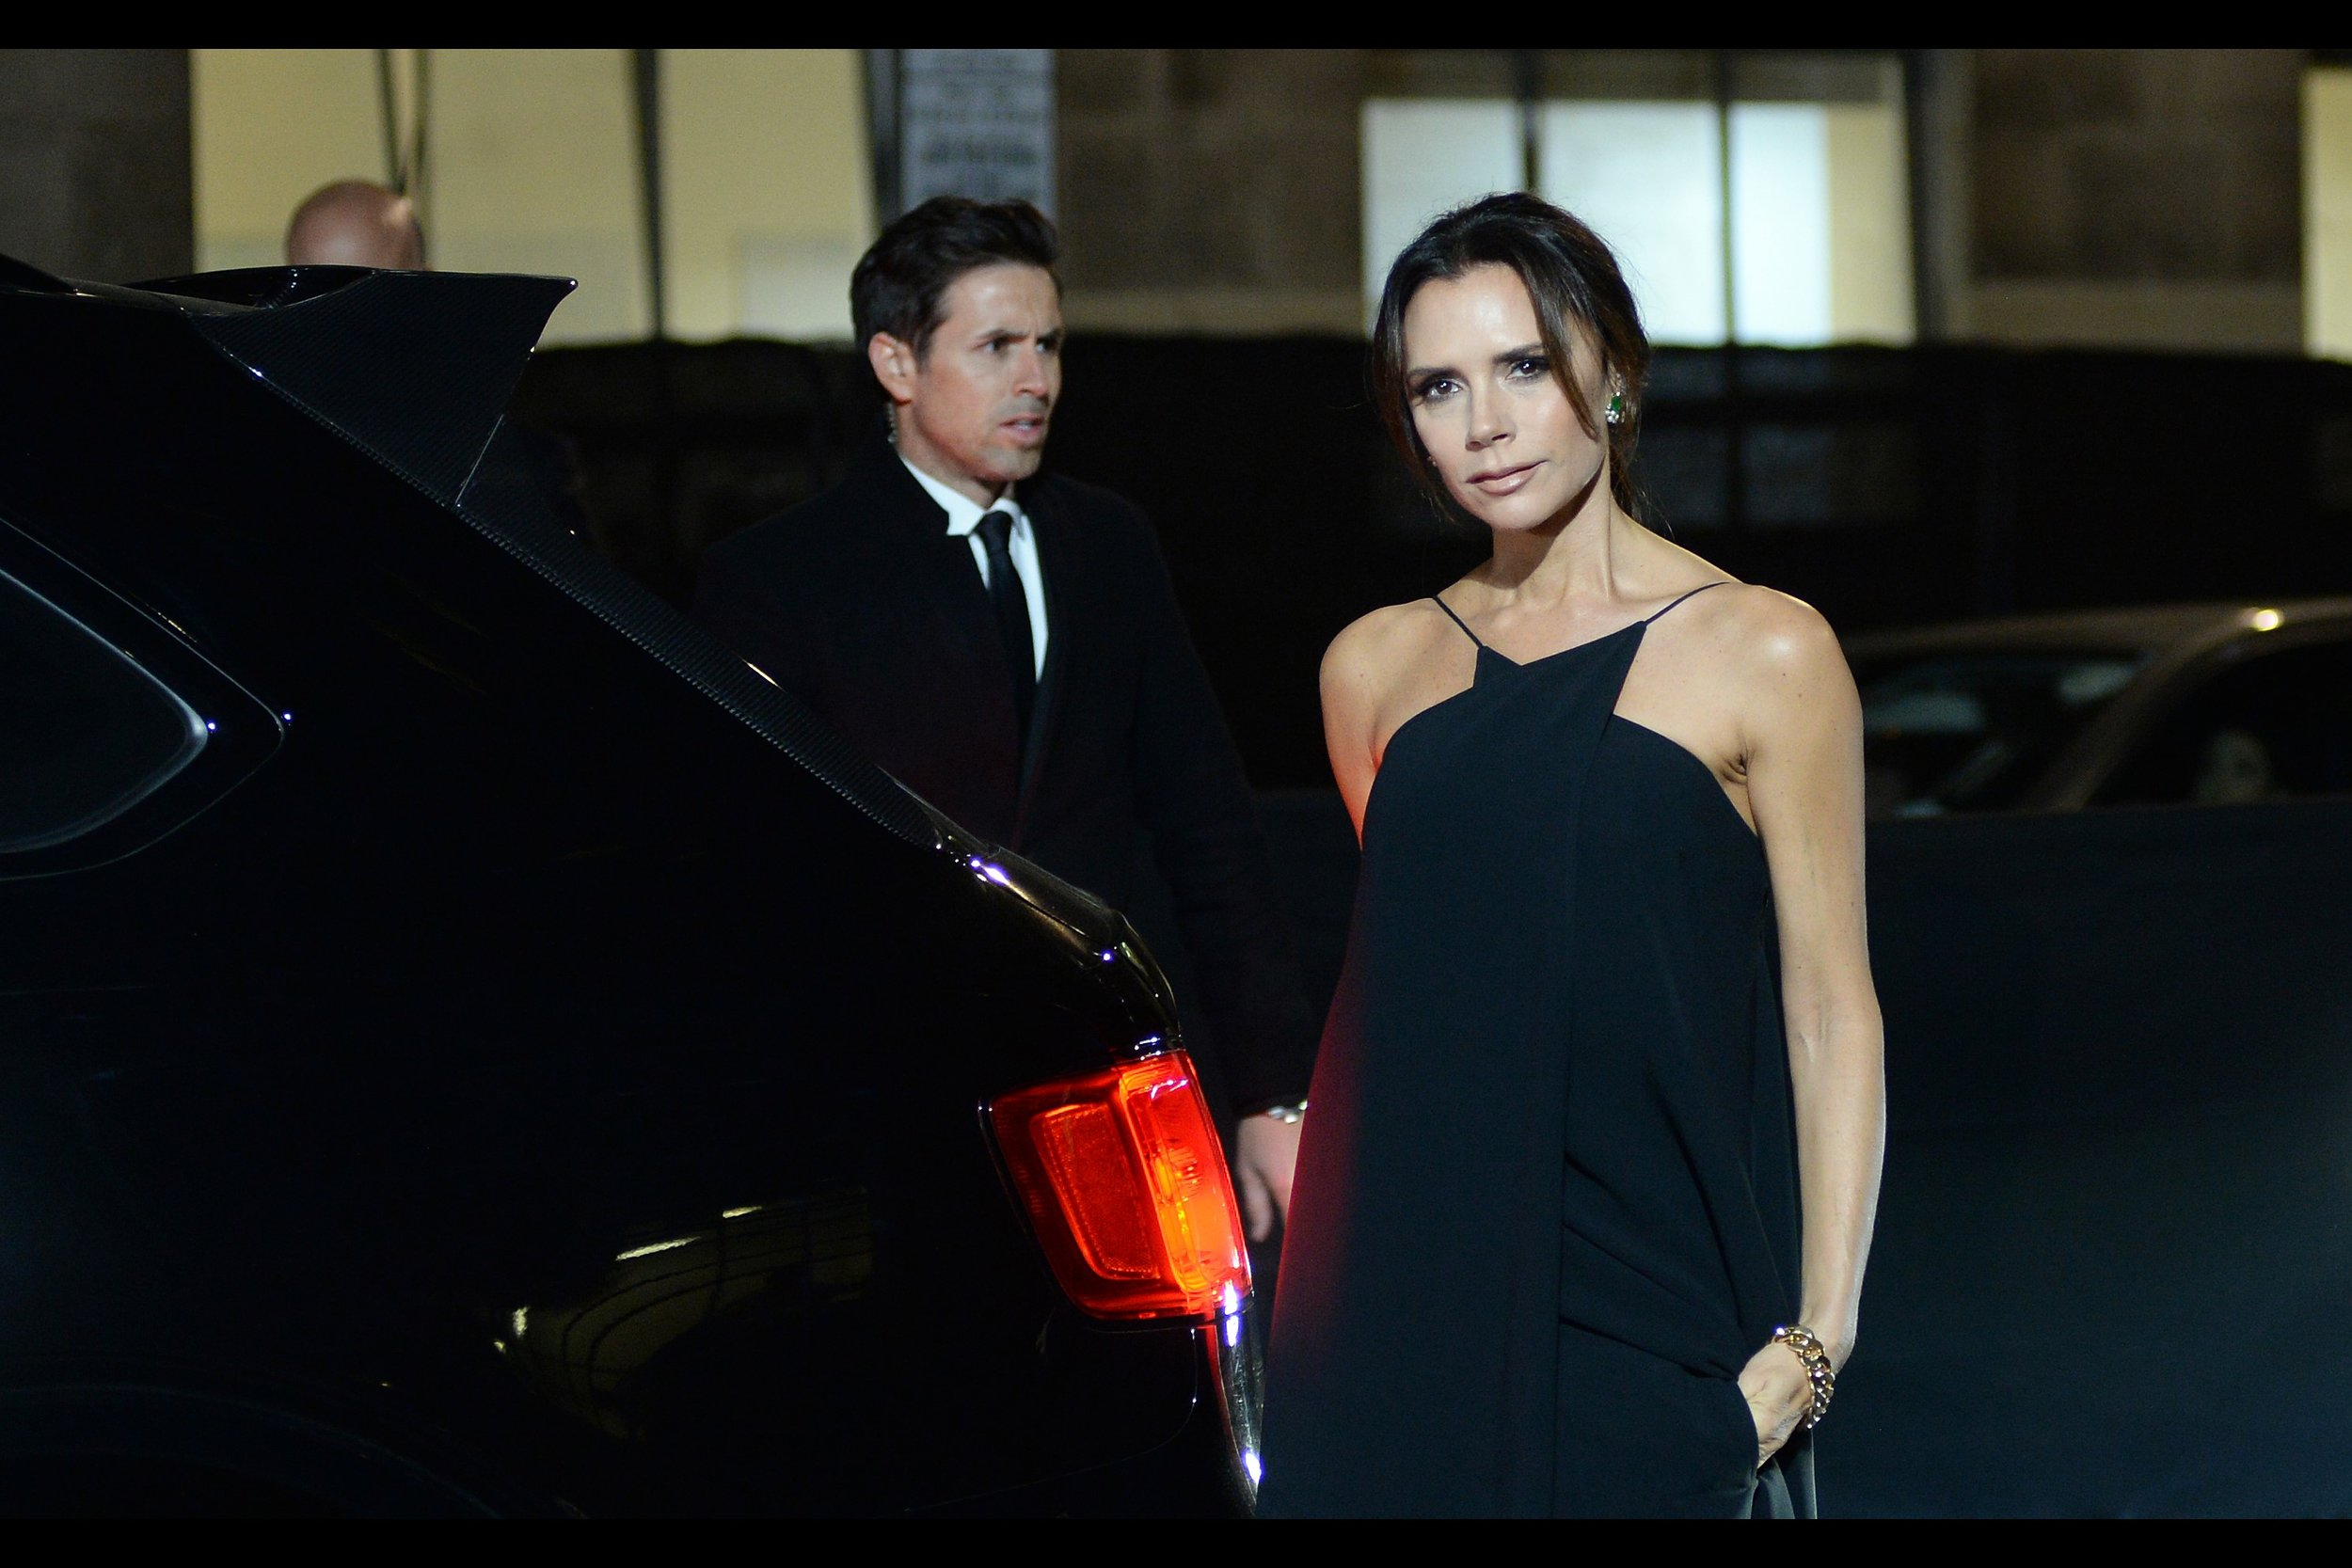 This moment that Victoria Beckham and I are sharing…. continues. It's been going on for what seems like years, possibly decades. The guy in the background might be the grandson of the original chauffeur who drove her here, I don't know.